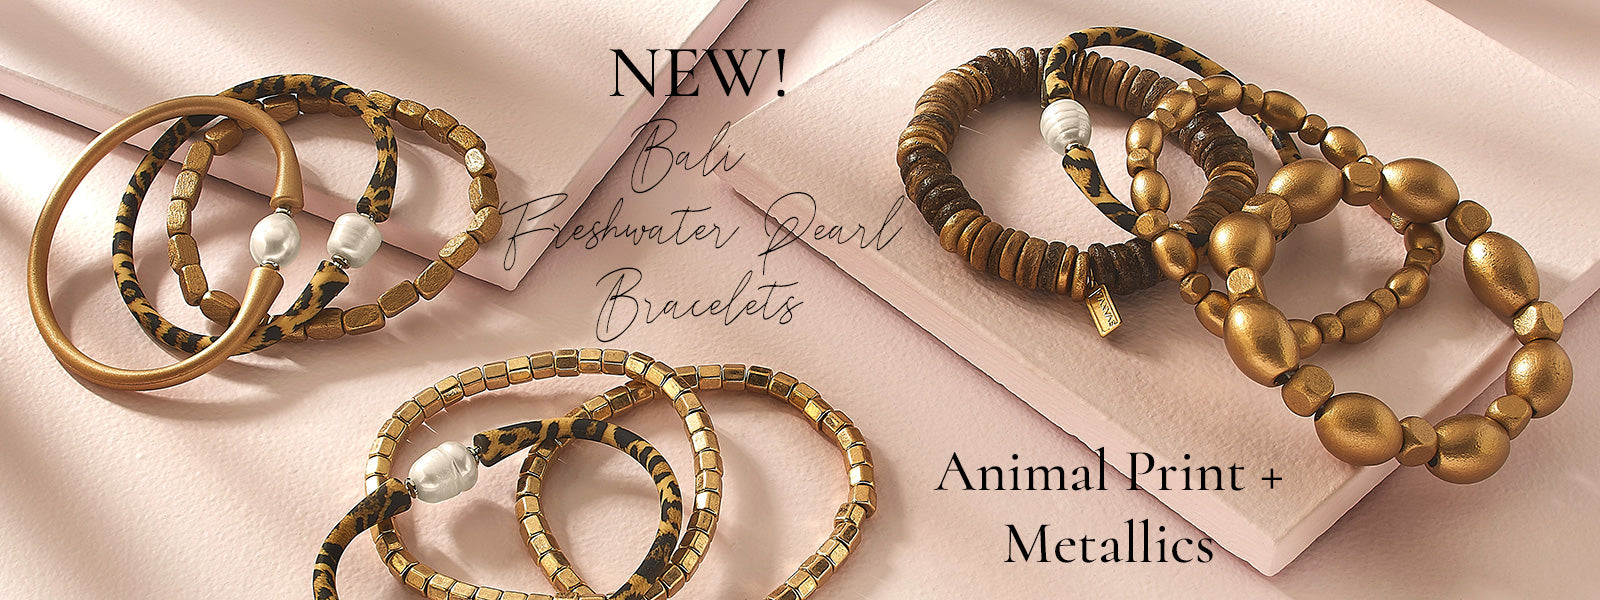 NEW! Animal Print & Metallic Bali Freshwater Pearl Bracelets - Real Freshwater Pearls and totally waterproof!